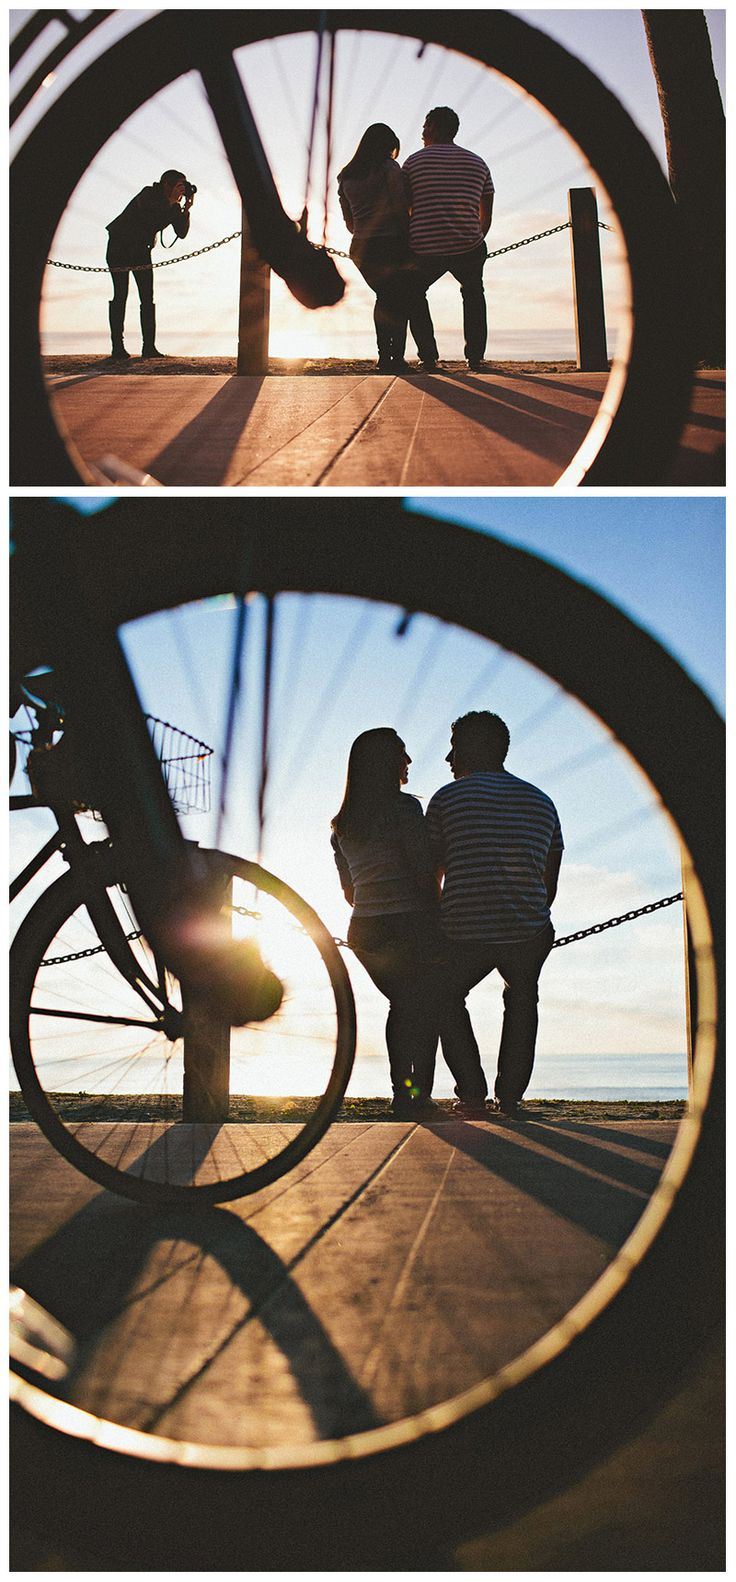 adorable photo through bike wheel